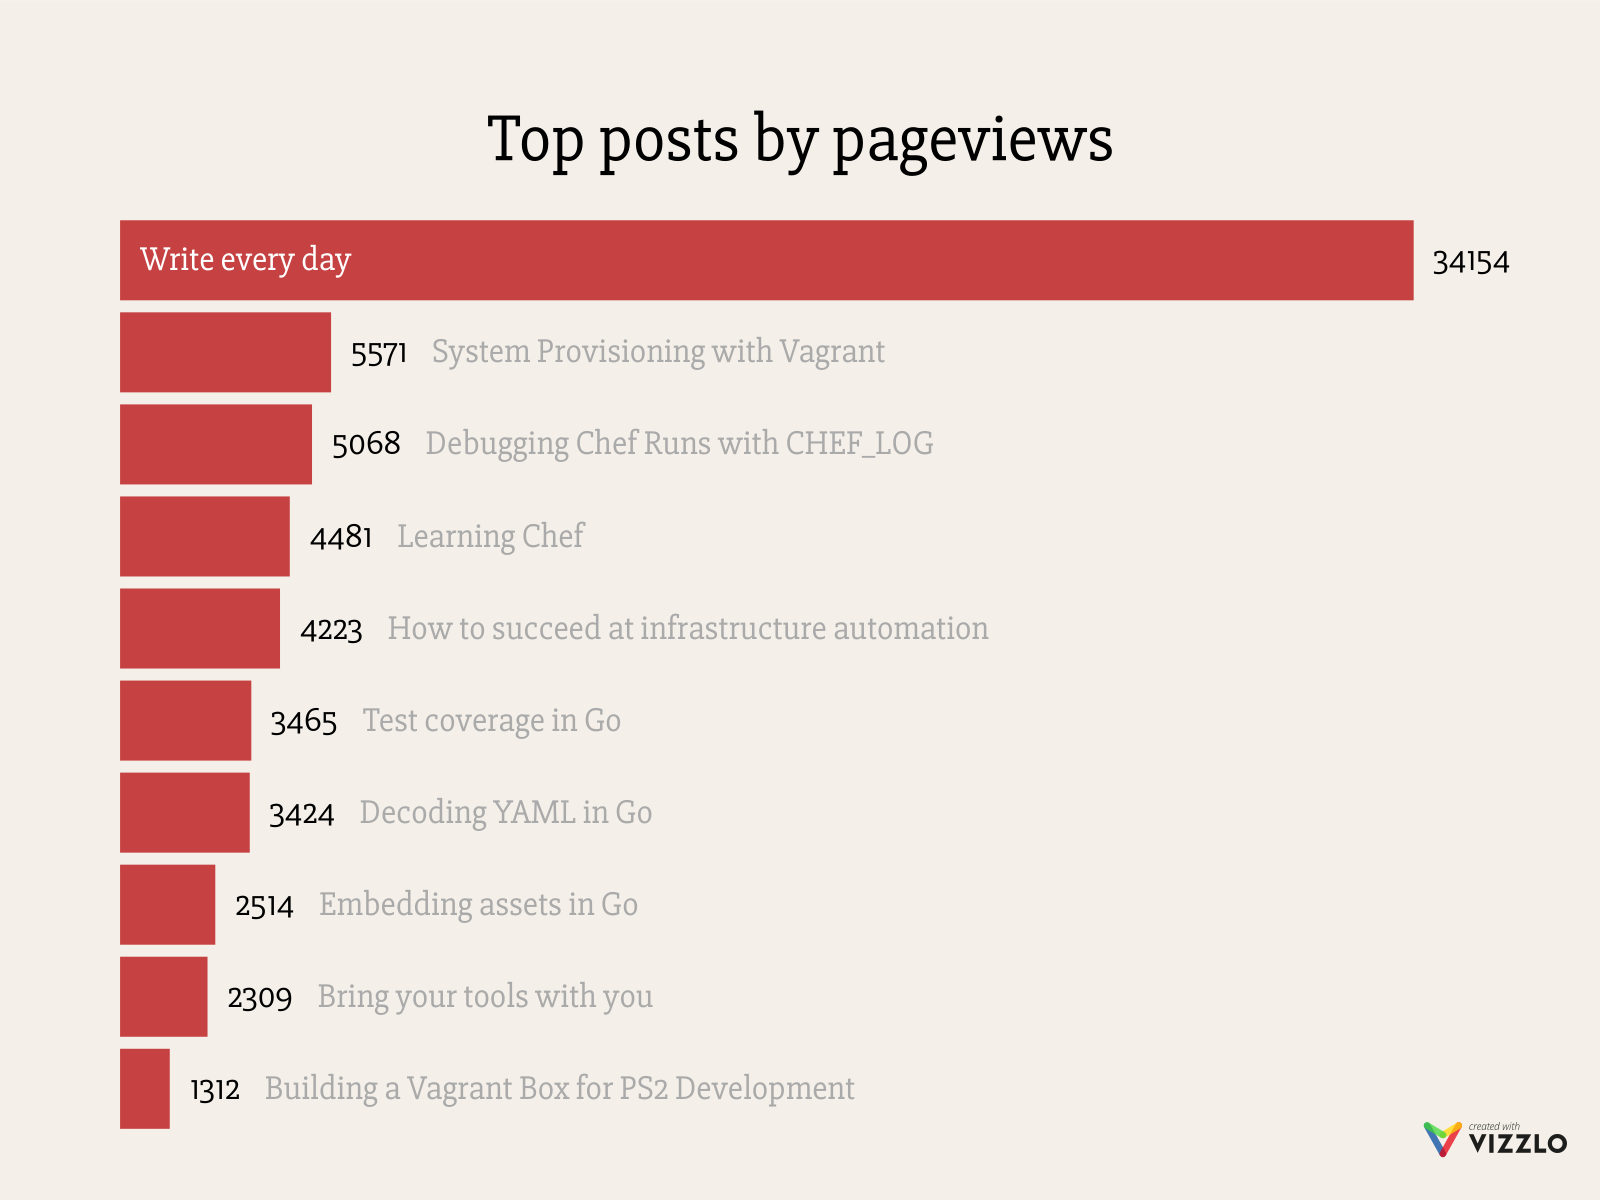 Top posts by pageviews